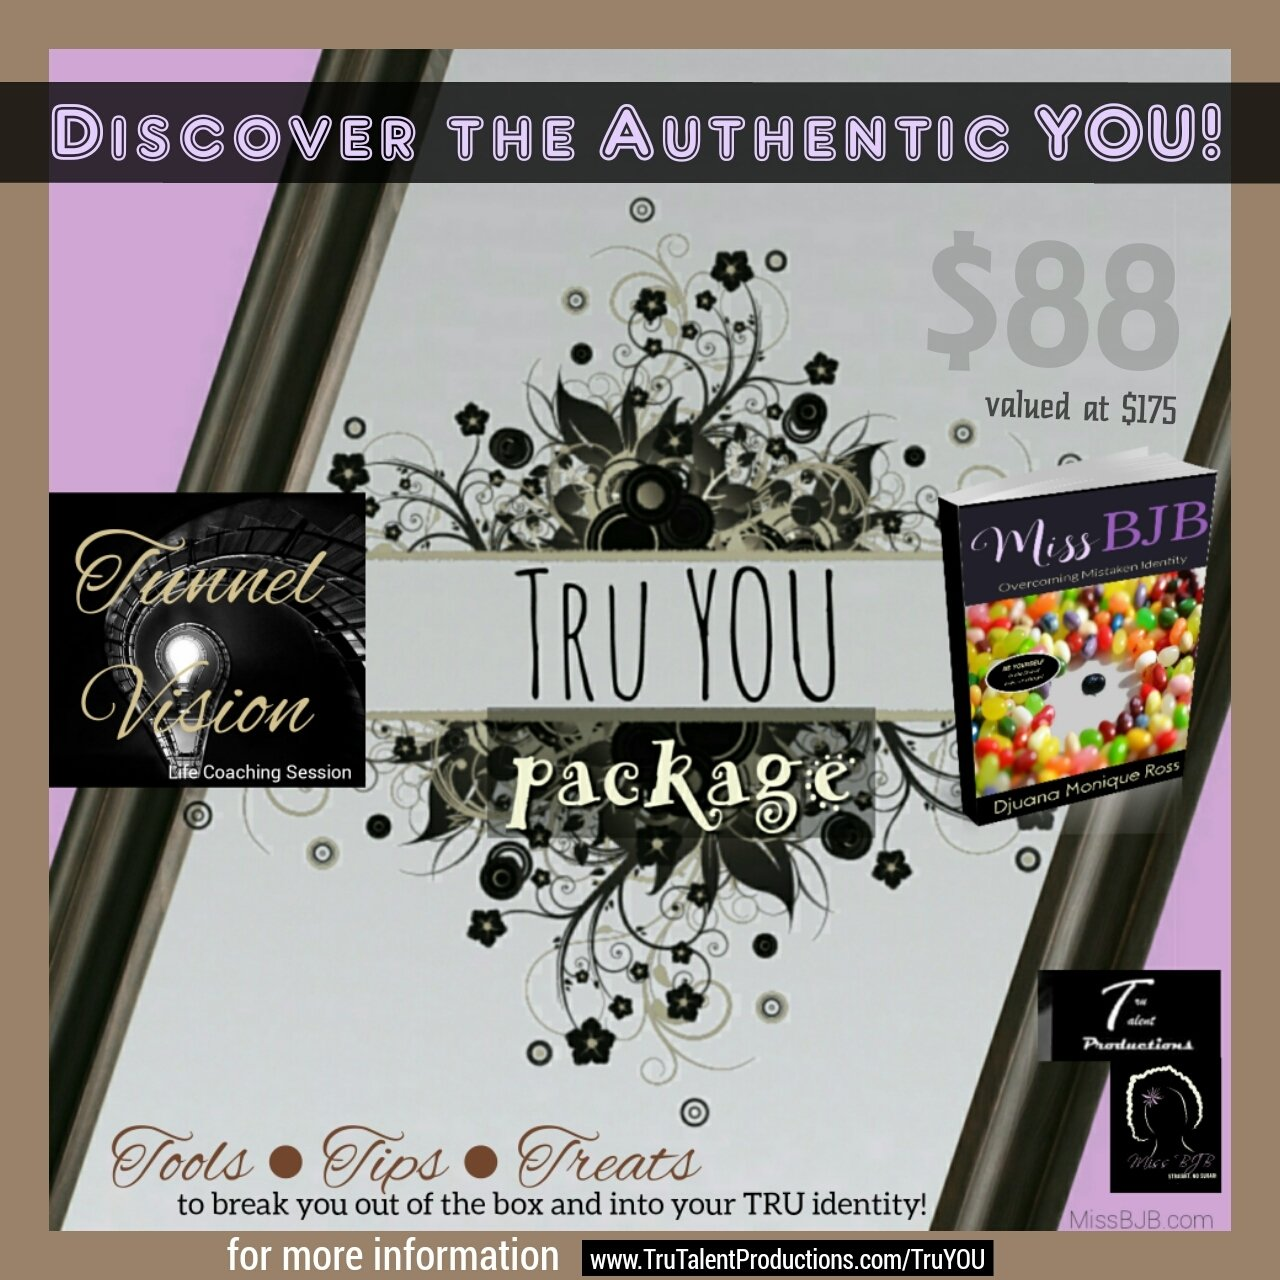 Tru YOU Packages (includes Miss BJB book+Tunnel Vision session)